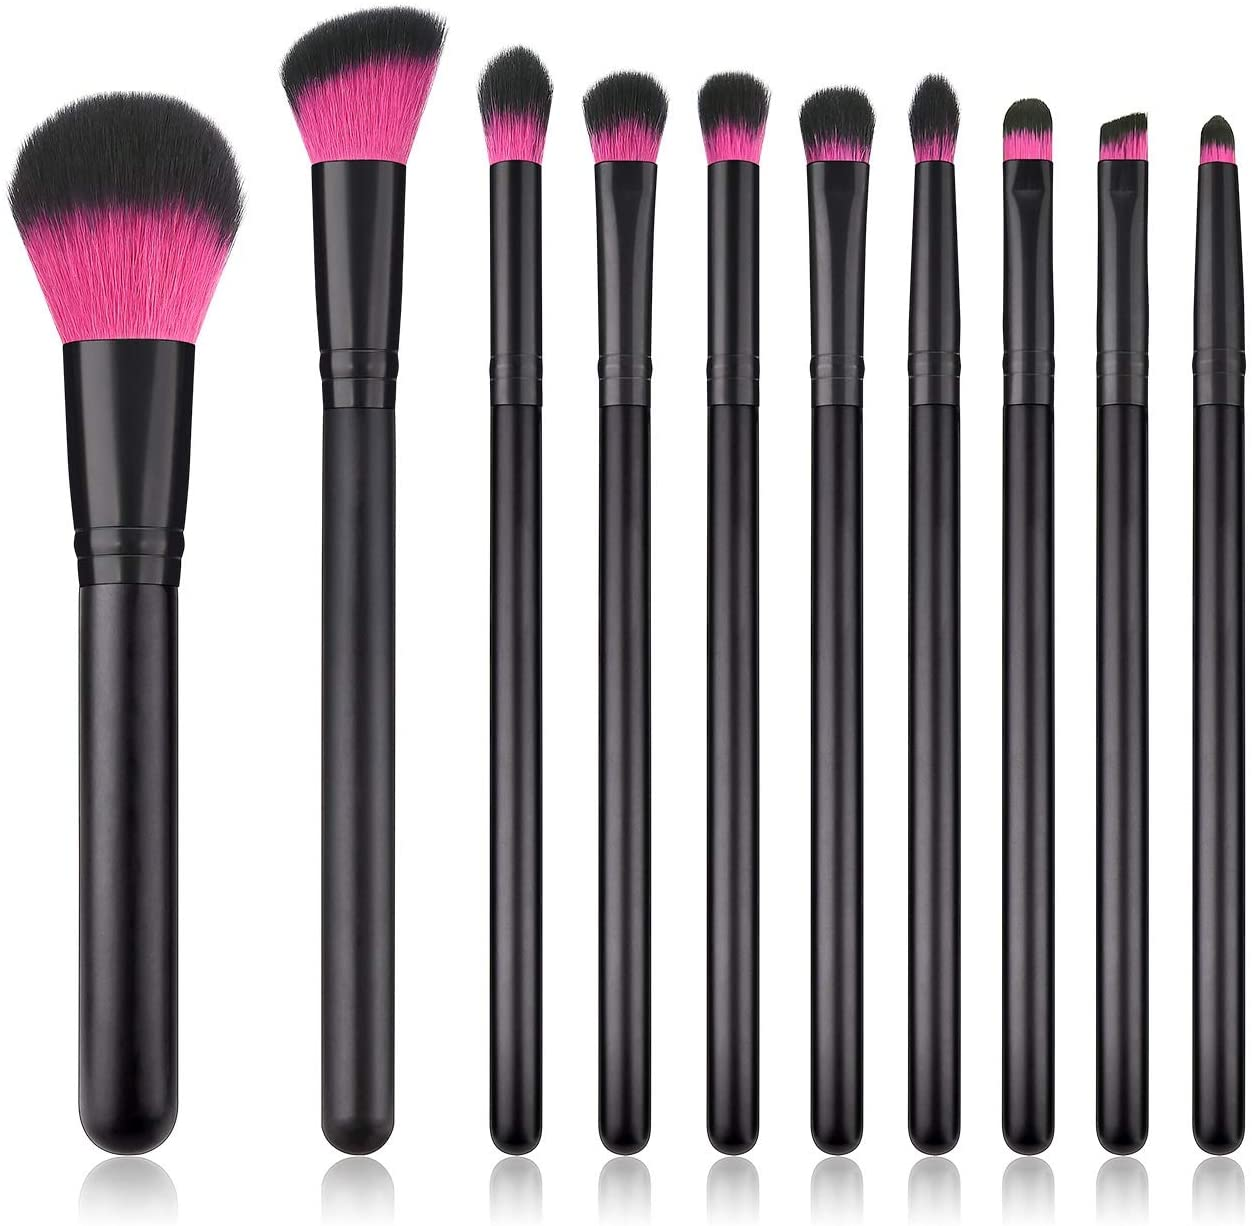 zZZ ZX Multifunctional 10 Makeup Brushes Black Purple Hair Set Beauty Tools Makeup Tools New Super Soft and Smooth Especially Suitable for Beginners Beautiful